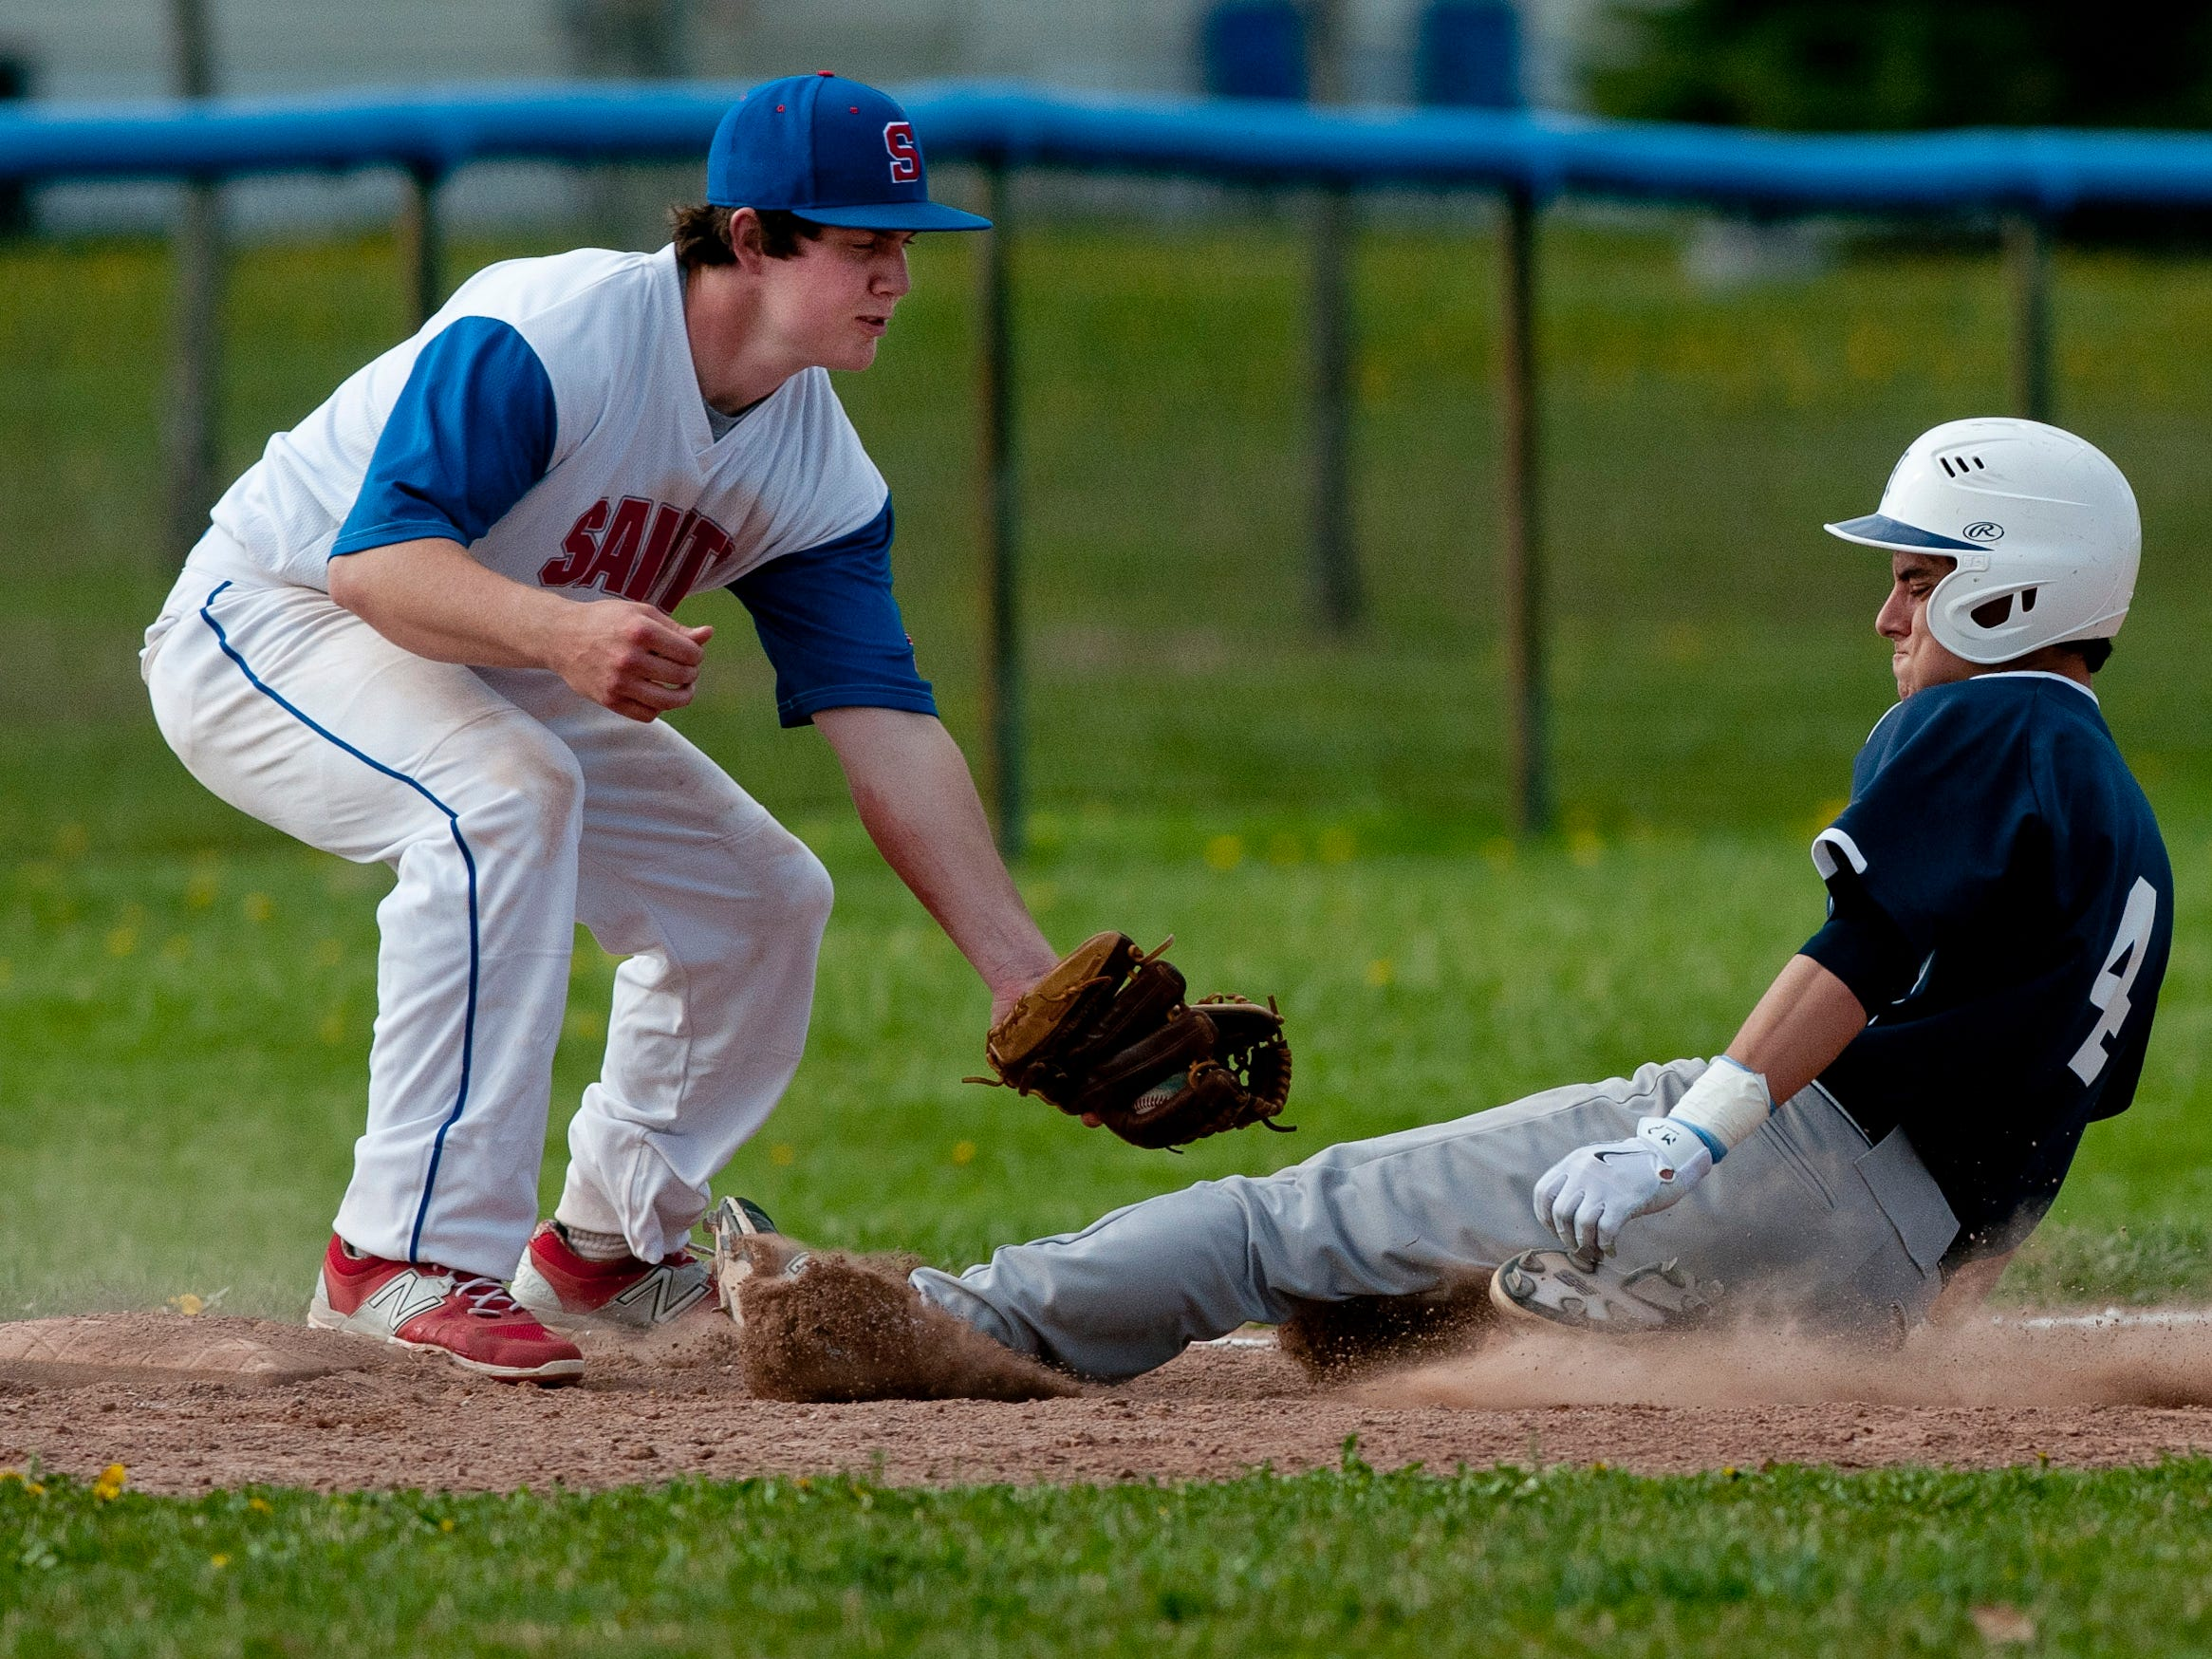 St. Clair's Jared Ambrose tags out Marysville's Joe Koch at third during a baseball game Wednesday, May 6, 2015 at St. Clair High School.